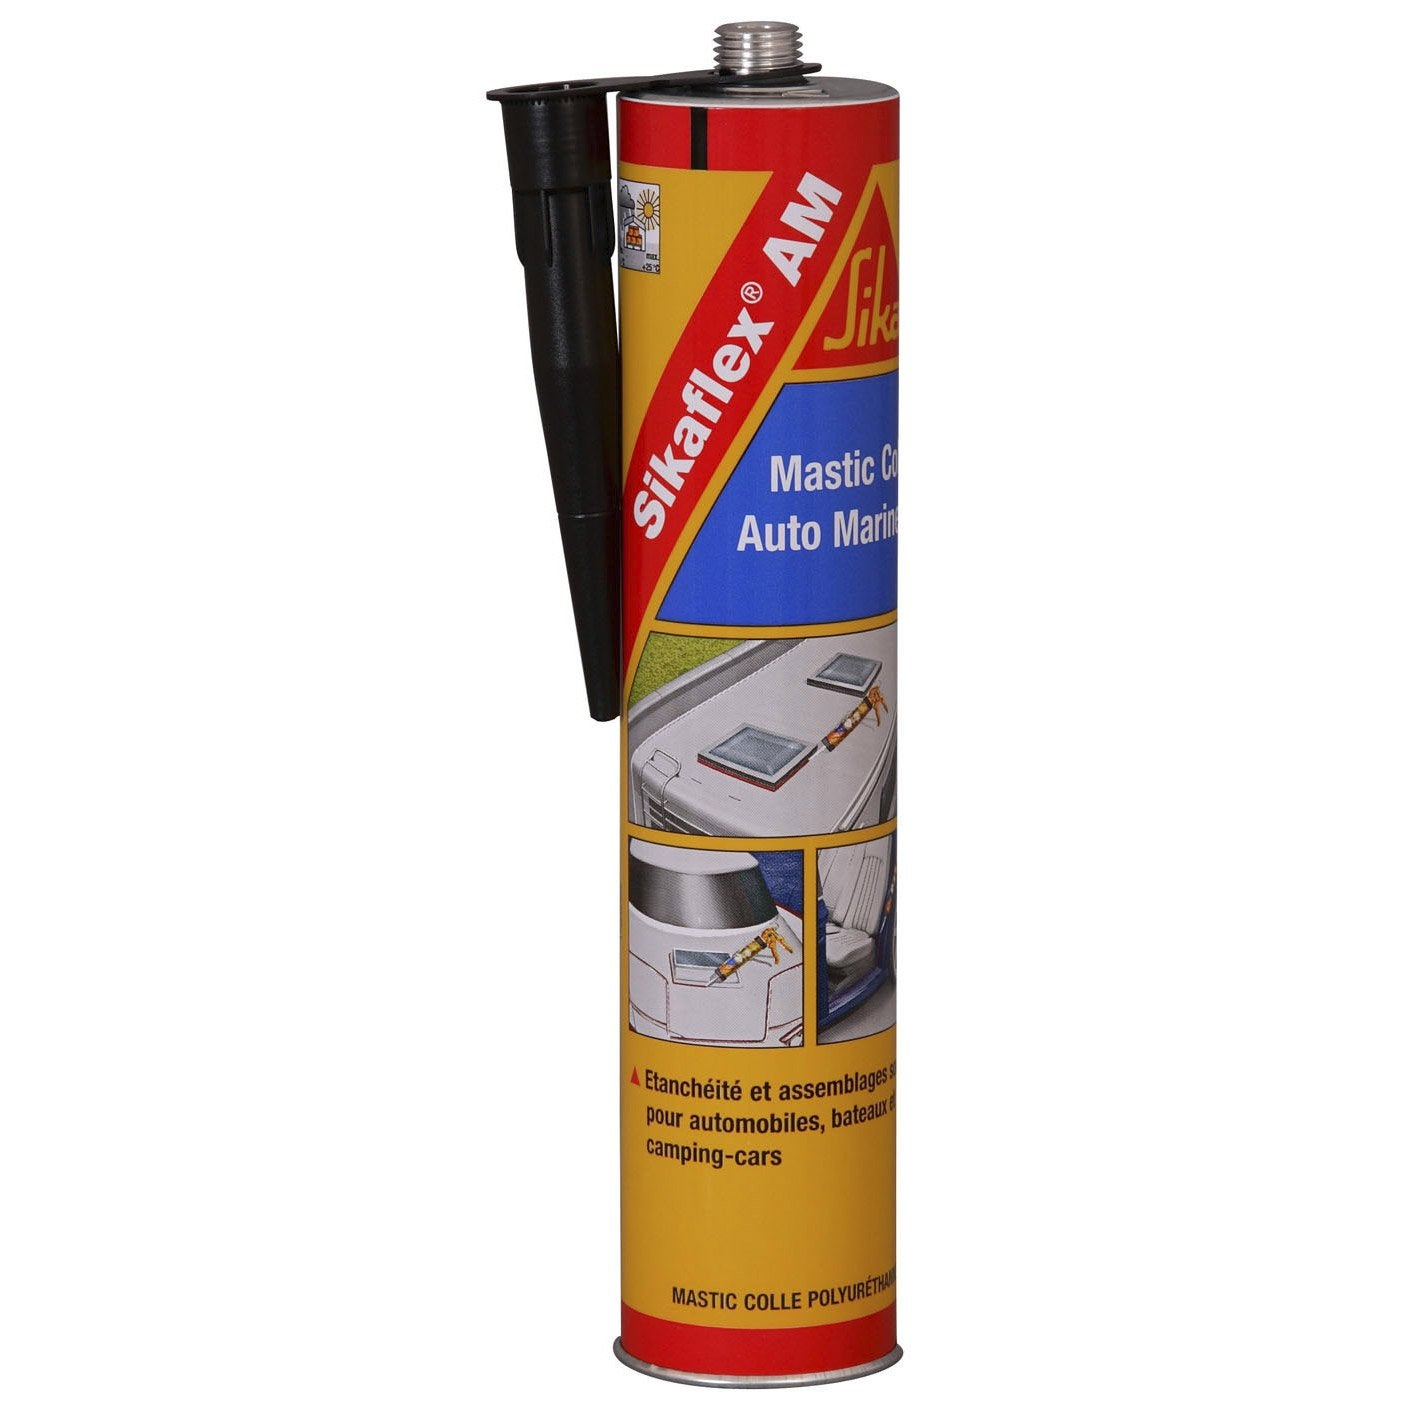 Mastic colle sika sikaflex am 300 ml noir leroy merlin - Colle pour lambris pvc ...